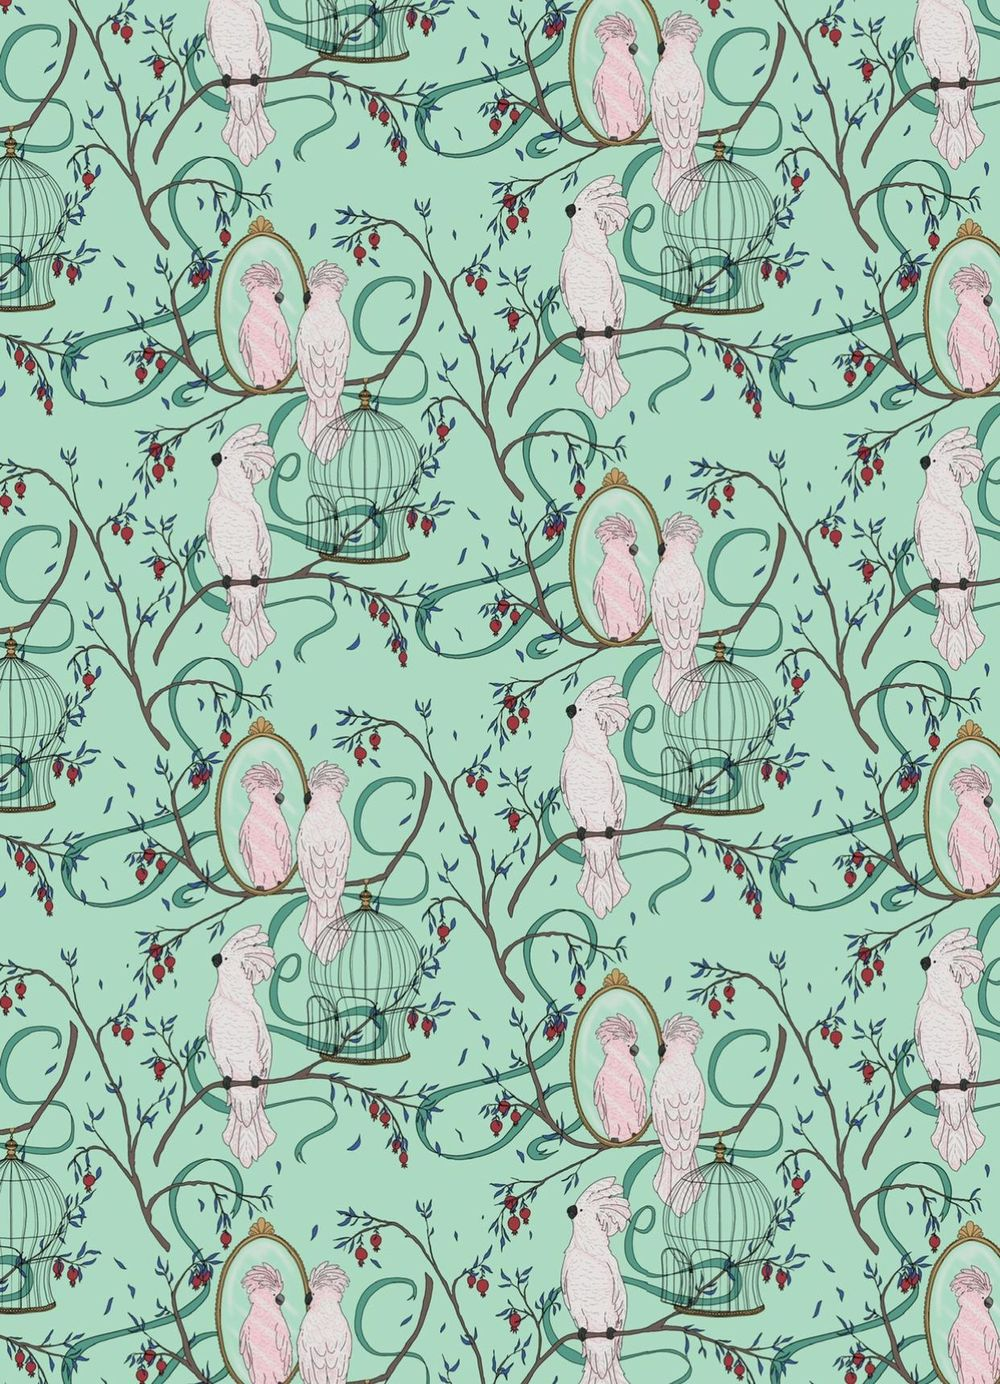 Cockatoo pattern - image 3 - student project